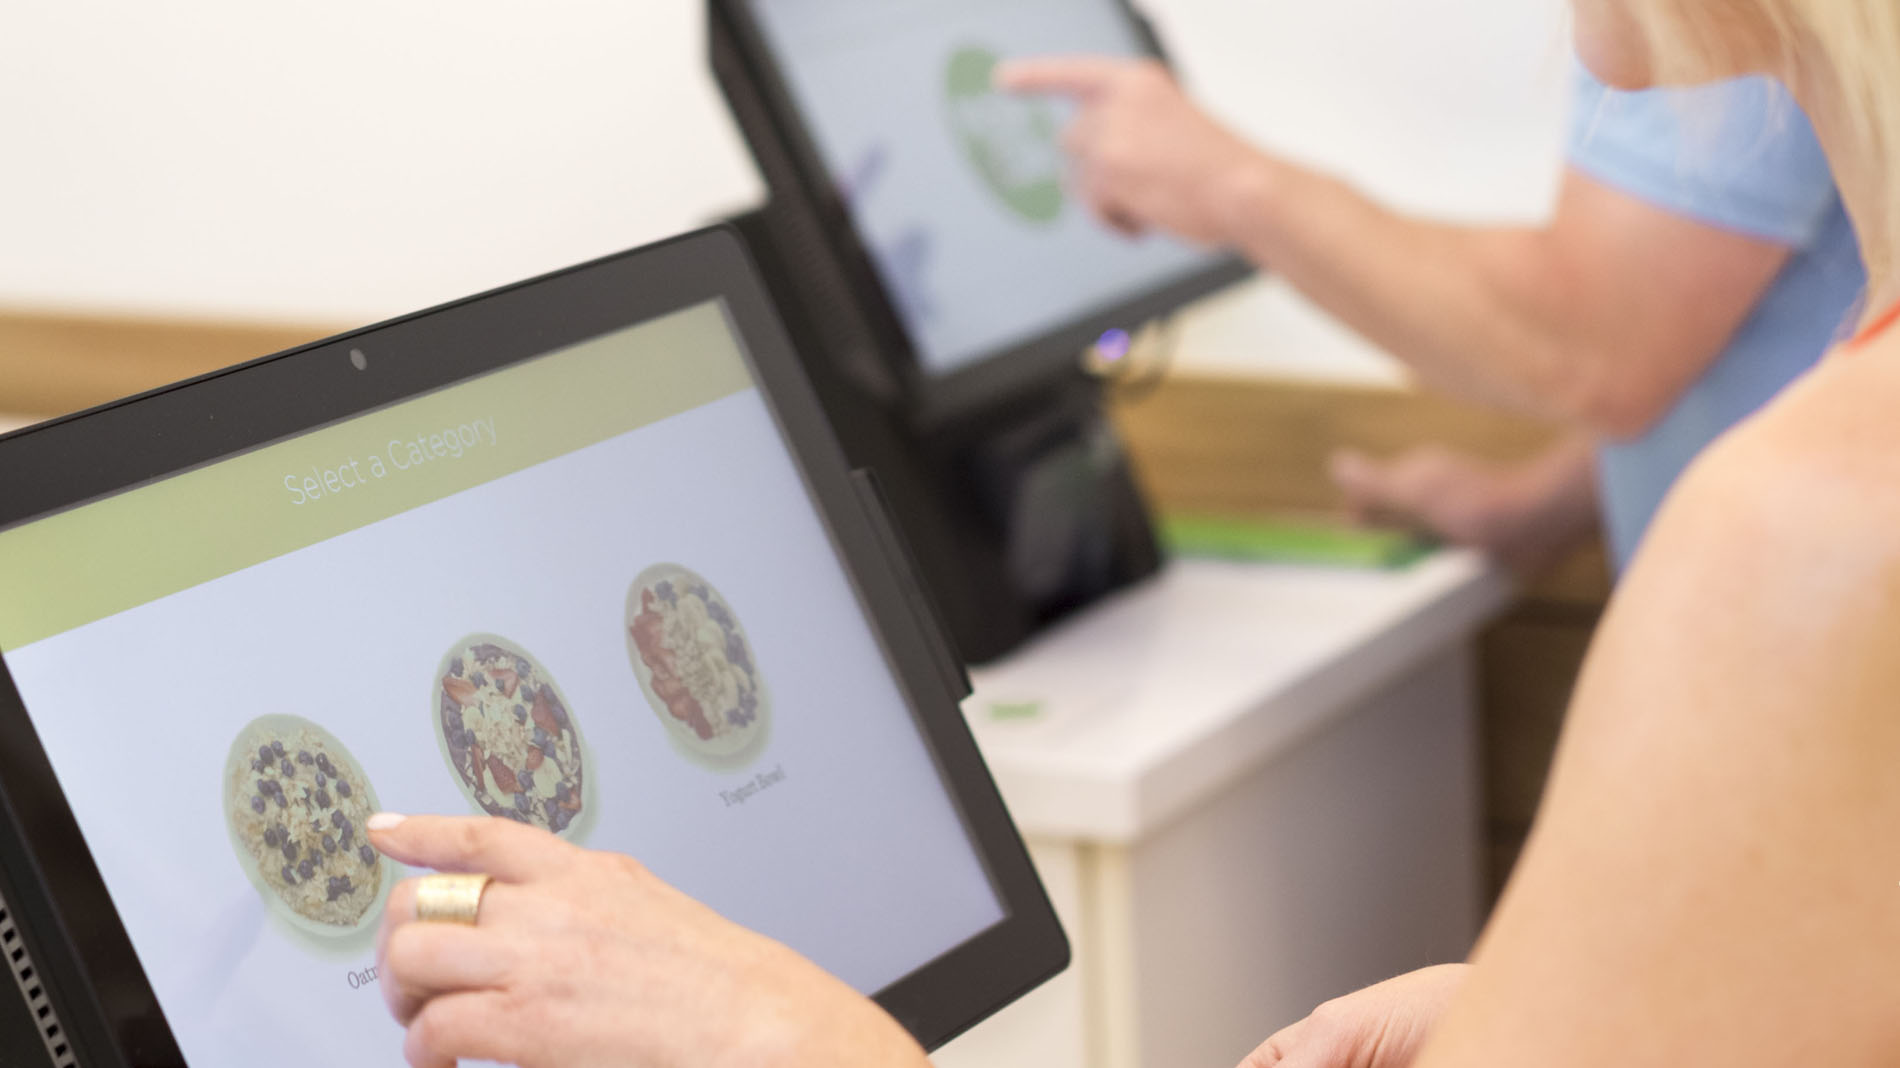 Dive into the Benefits of Self-Order Touchscreens - Delight Customers Whether They're at your Counter or on their Couch